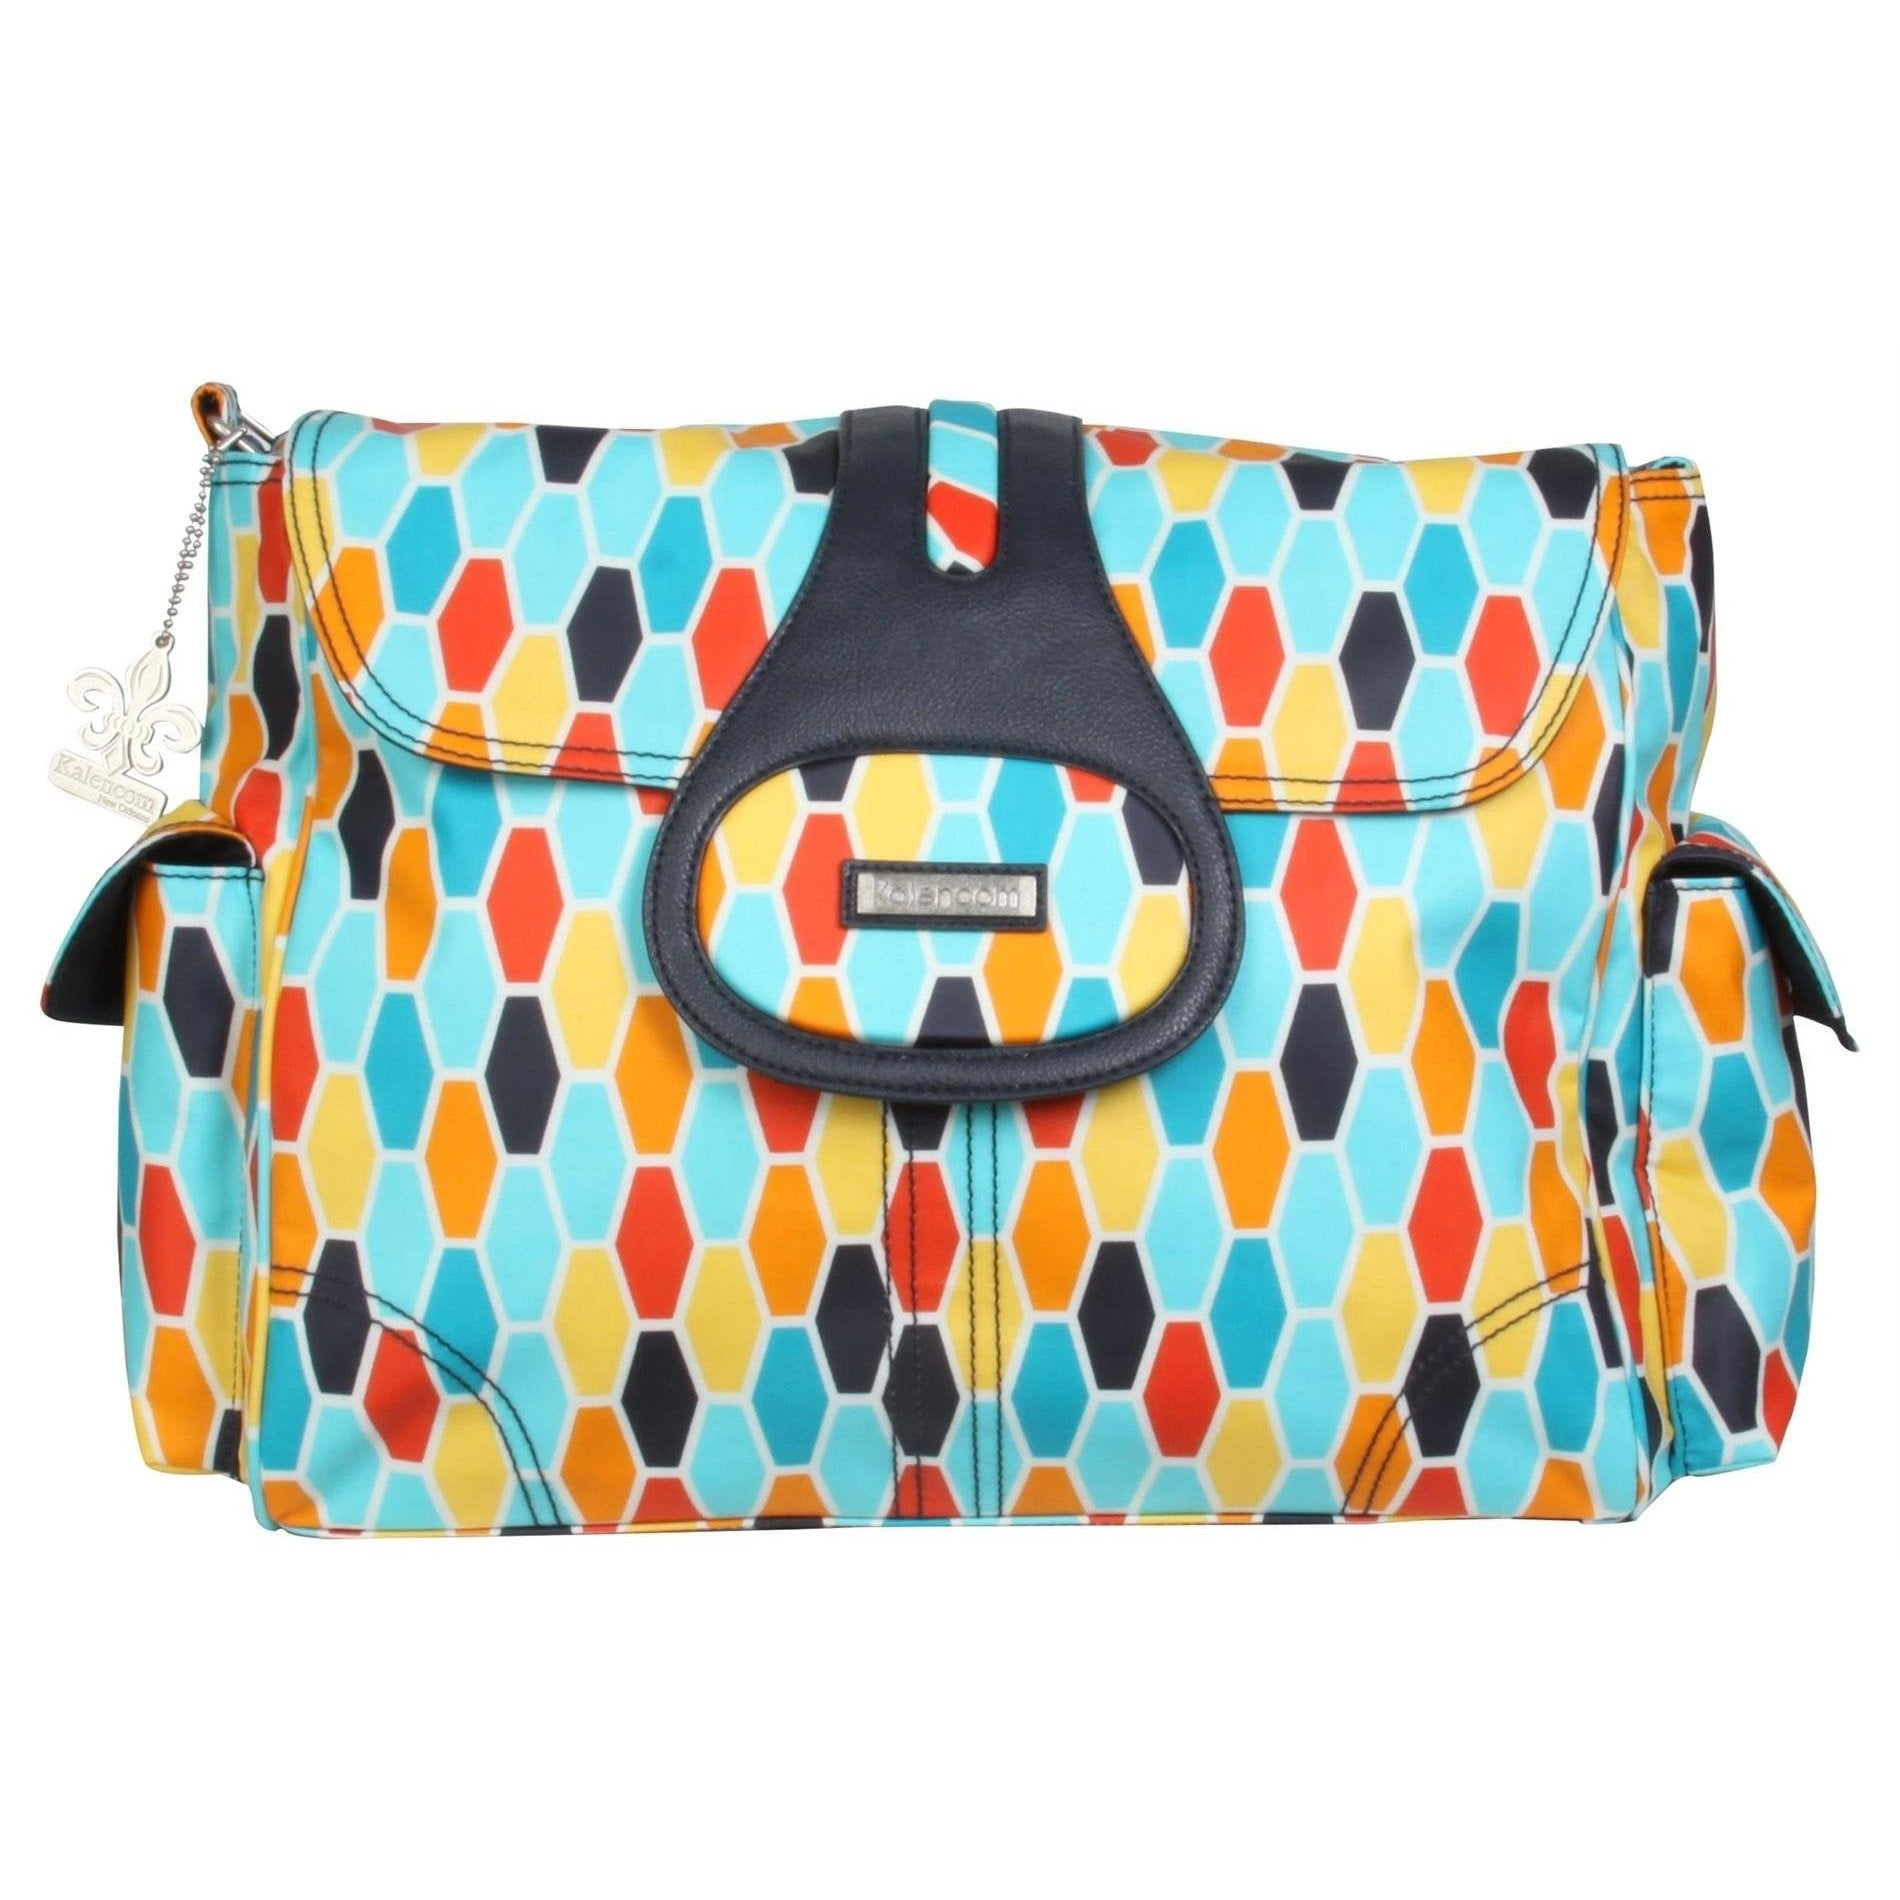 Honeycomb Orange Elite Matte Coated Diaper Bag | Style 2975 - Kalencom-Diaper Bags-Default-Jack and Jill Boutique